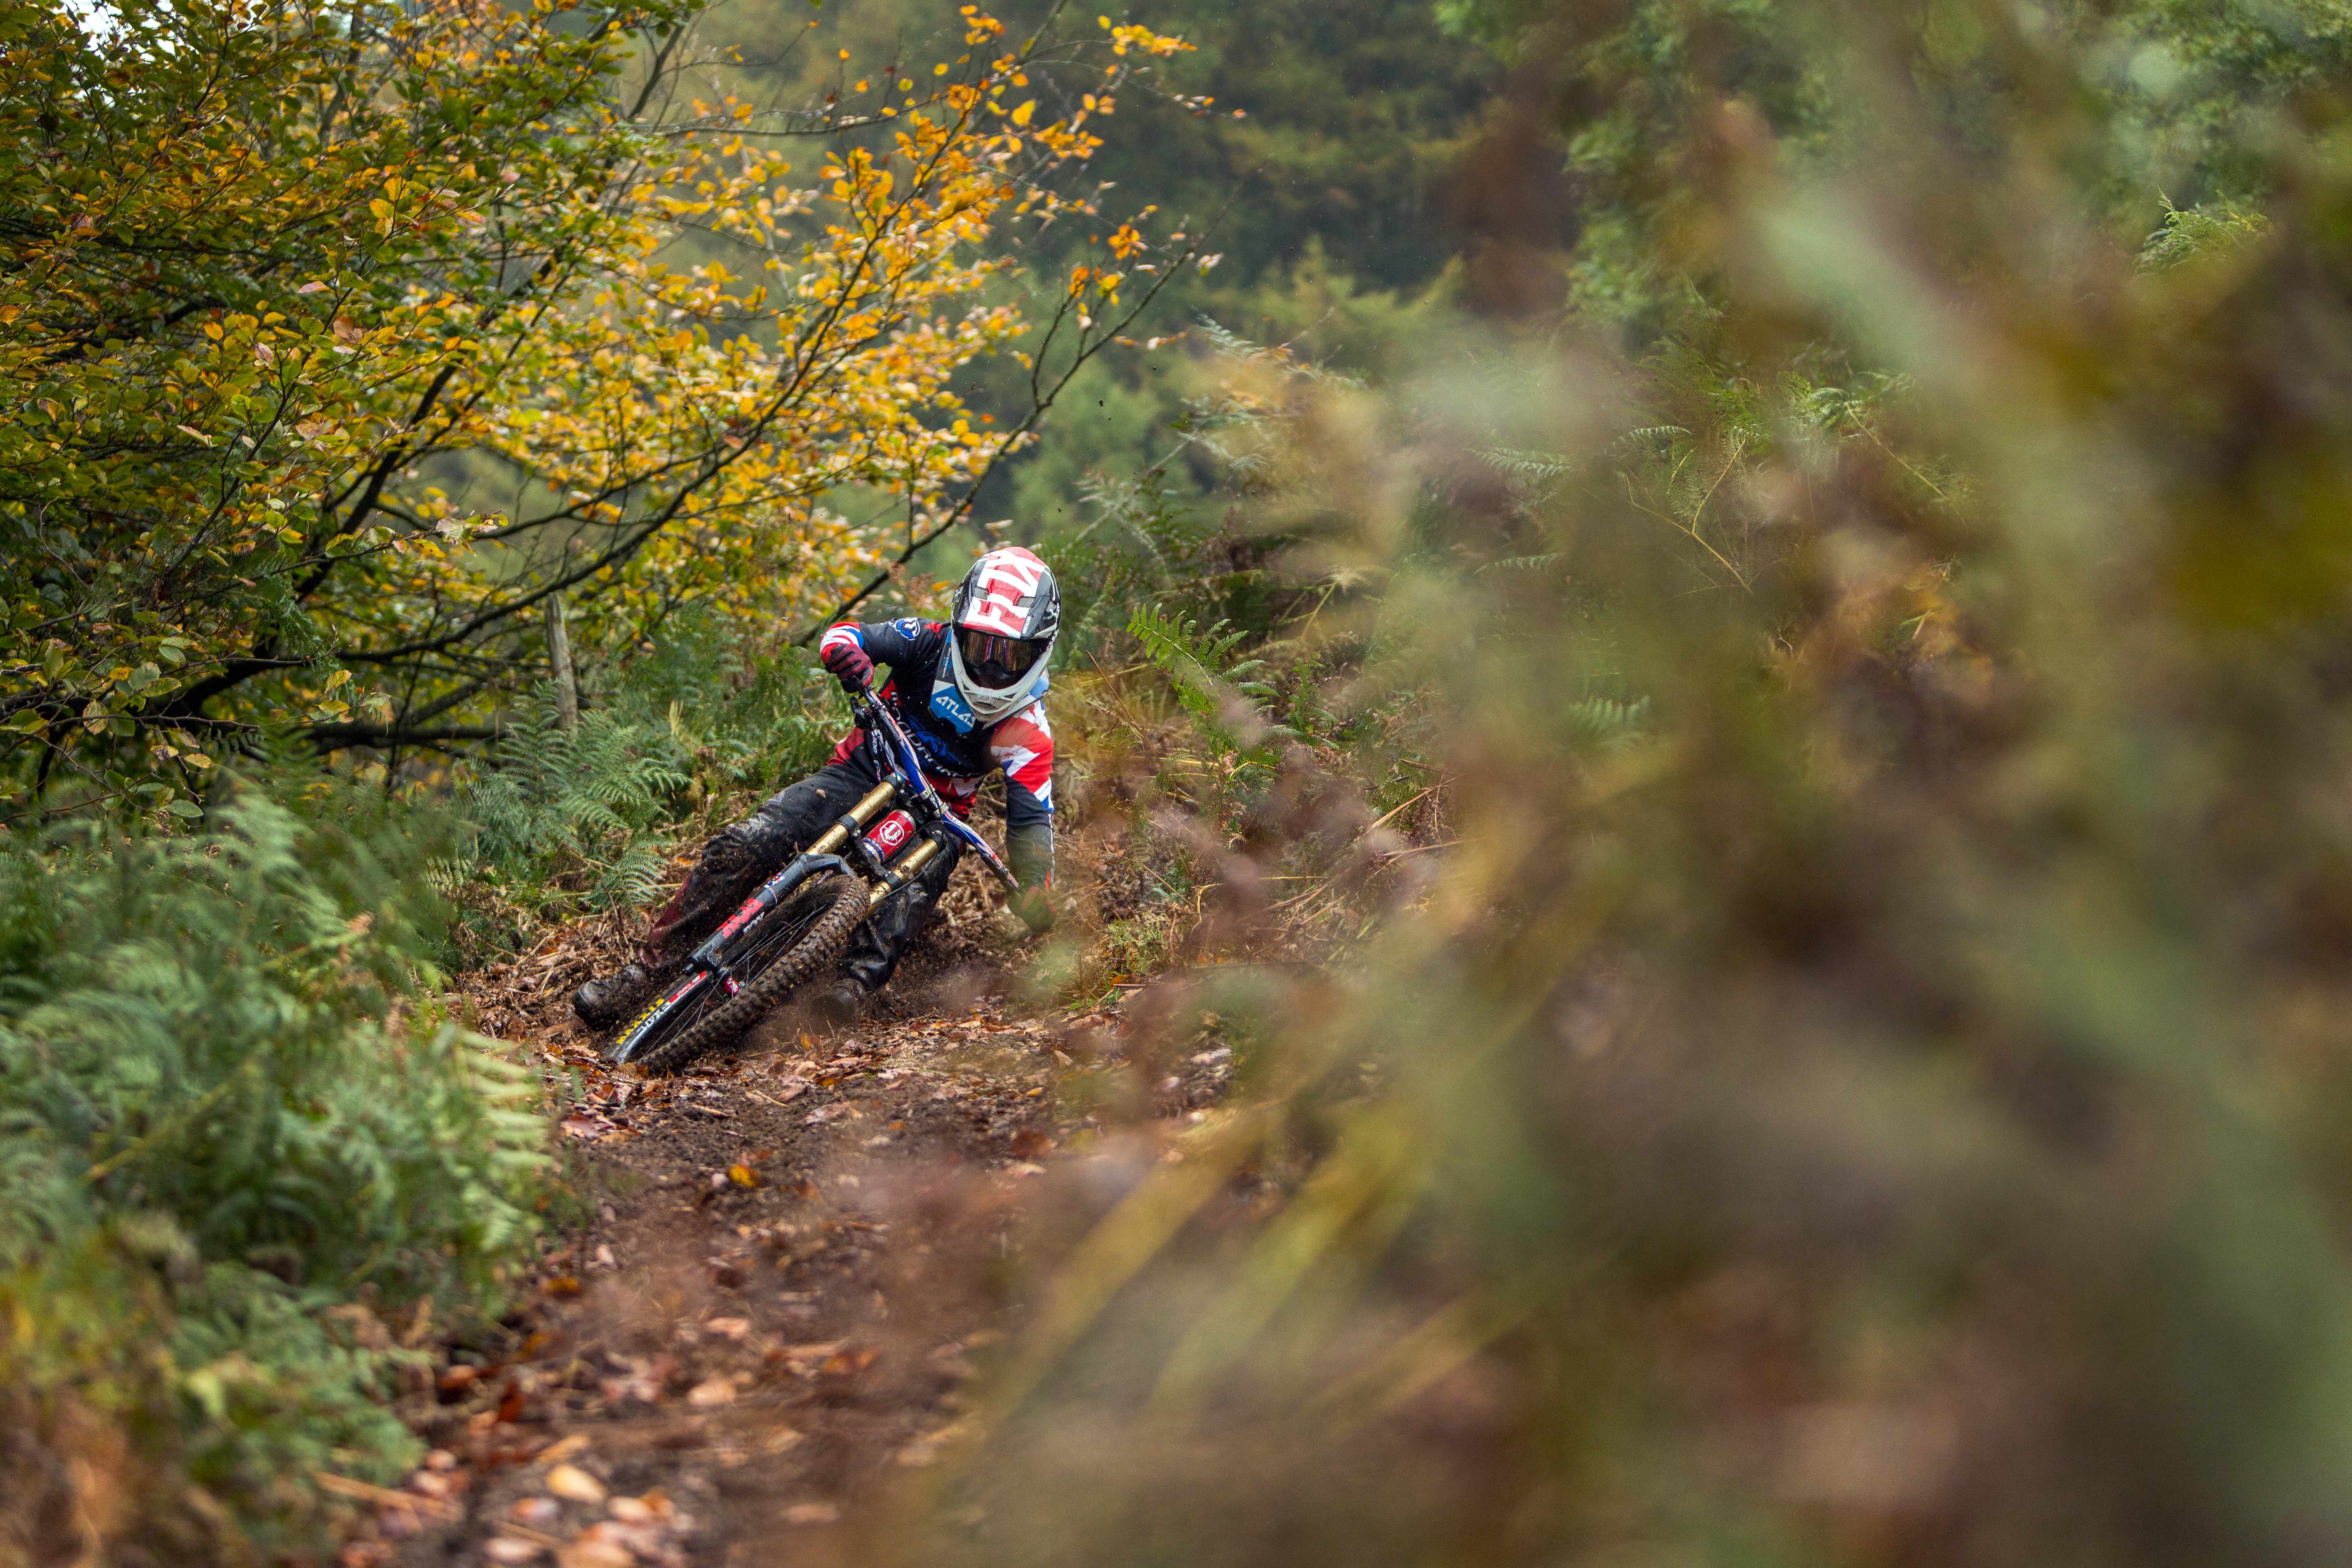 Laurie Greenland riding a corner on his mountain bike in South Wales